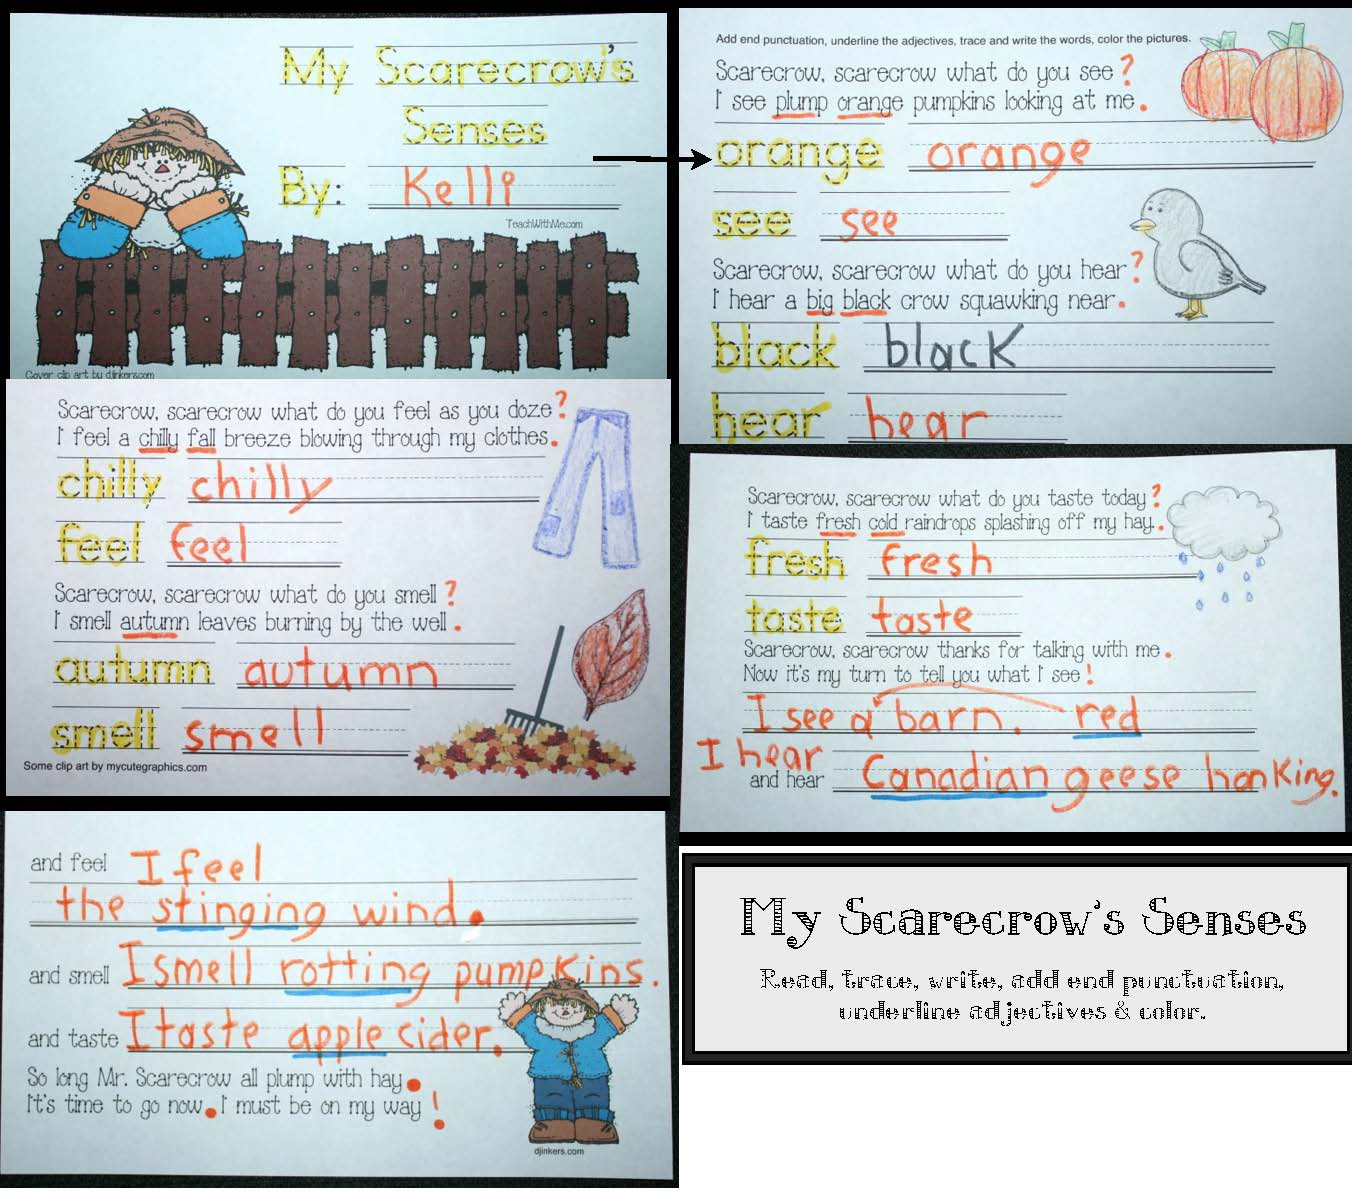 scarecrow alphabet cards, 5 senses activities, end punctuation activities, adjective activities, alphabet activities, alphabet games, alphabet centers, free alphabet cards for fall, free alphabet cards, scarecrow centers, scarecrow lessons, common core scarecrows, alphabet activities, shape activities, scarecrow crafts, scarecrow writing,